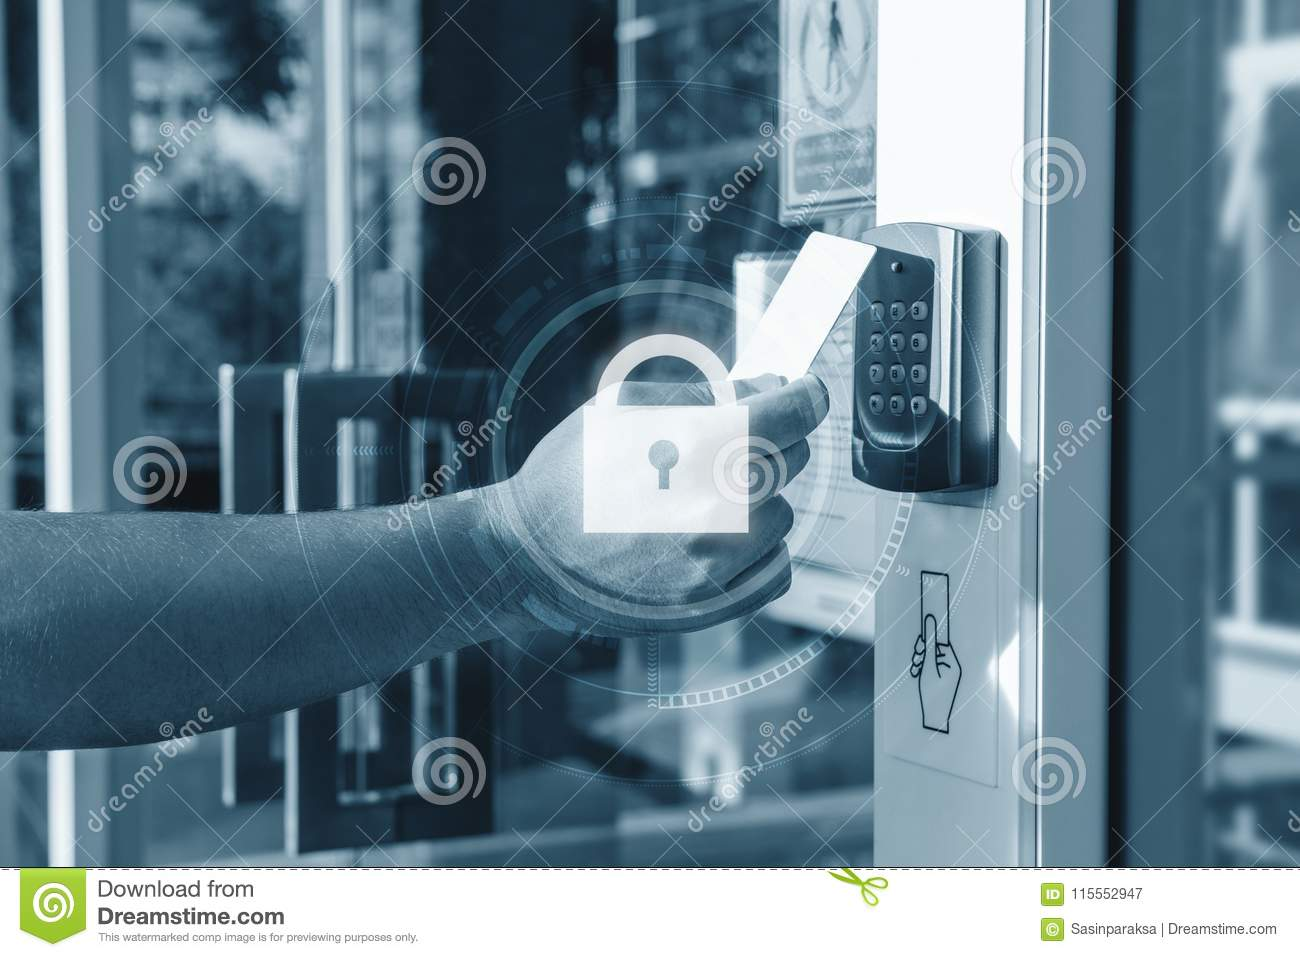 Hand using security key card scanning open the door to entering private building with lock icon technology. Home and building secu